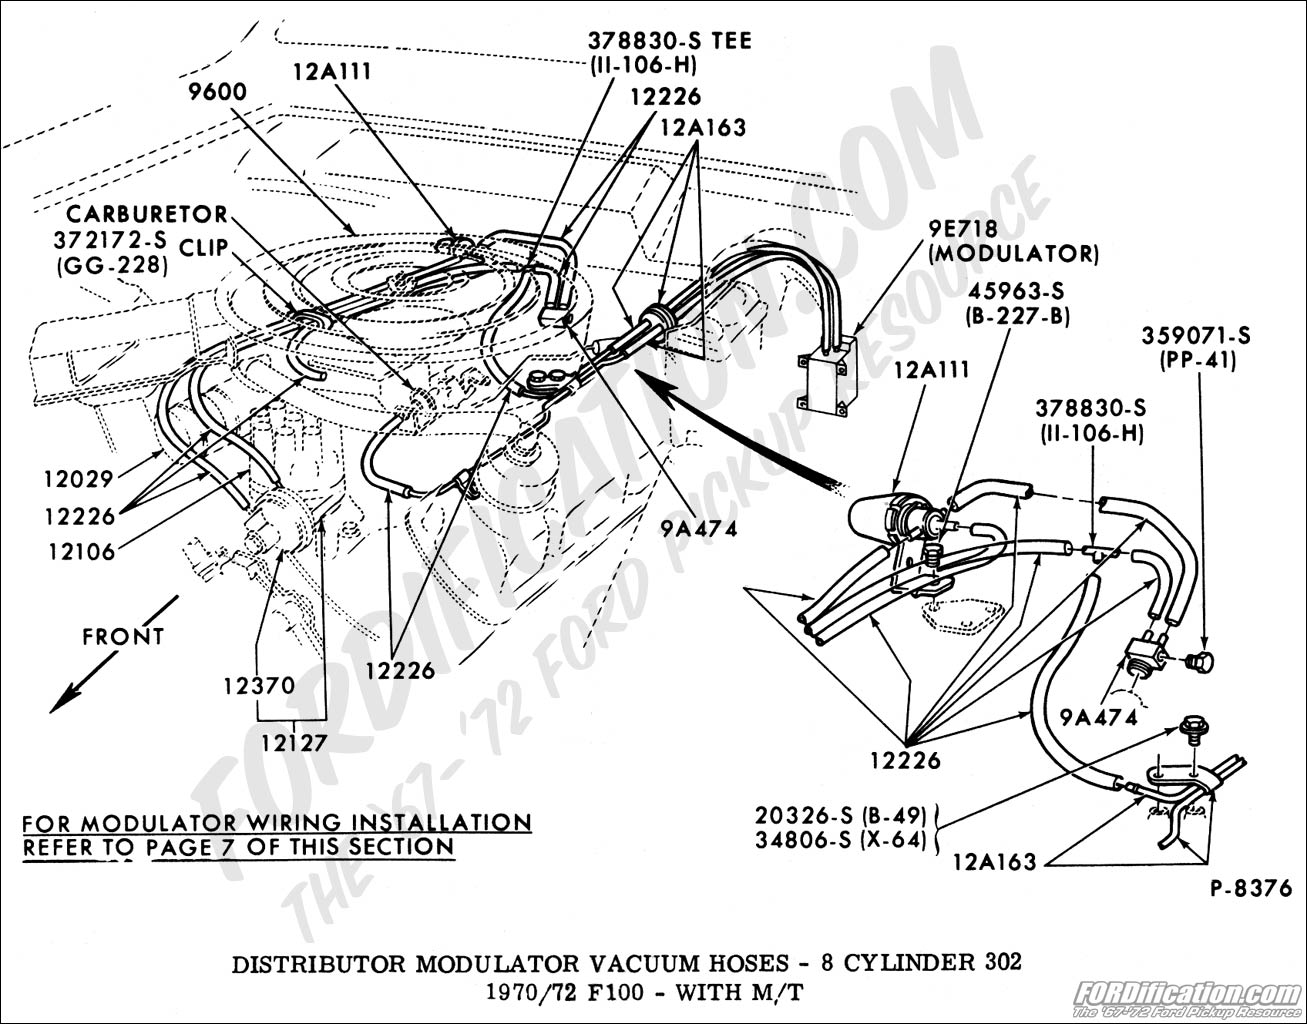 1988 Chevy 350 Spark Plug Wiring Diagram Electrical For 1989 Ford Truck Technical Drawings And Schematics Section I Wire Heat Shield Sb Firing Order